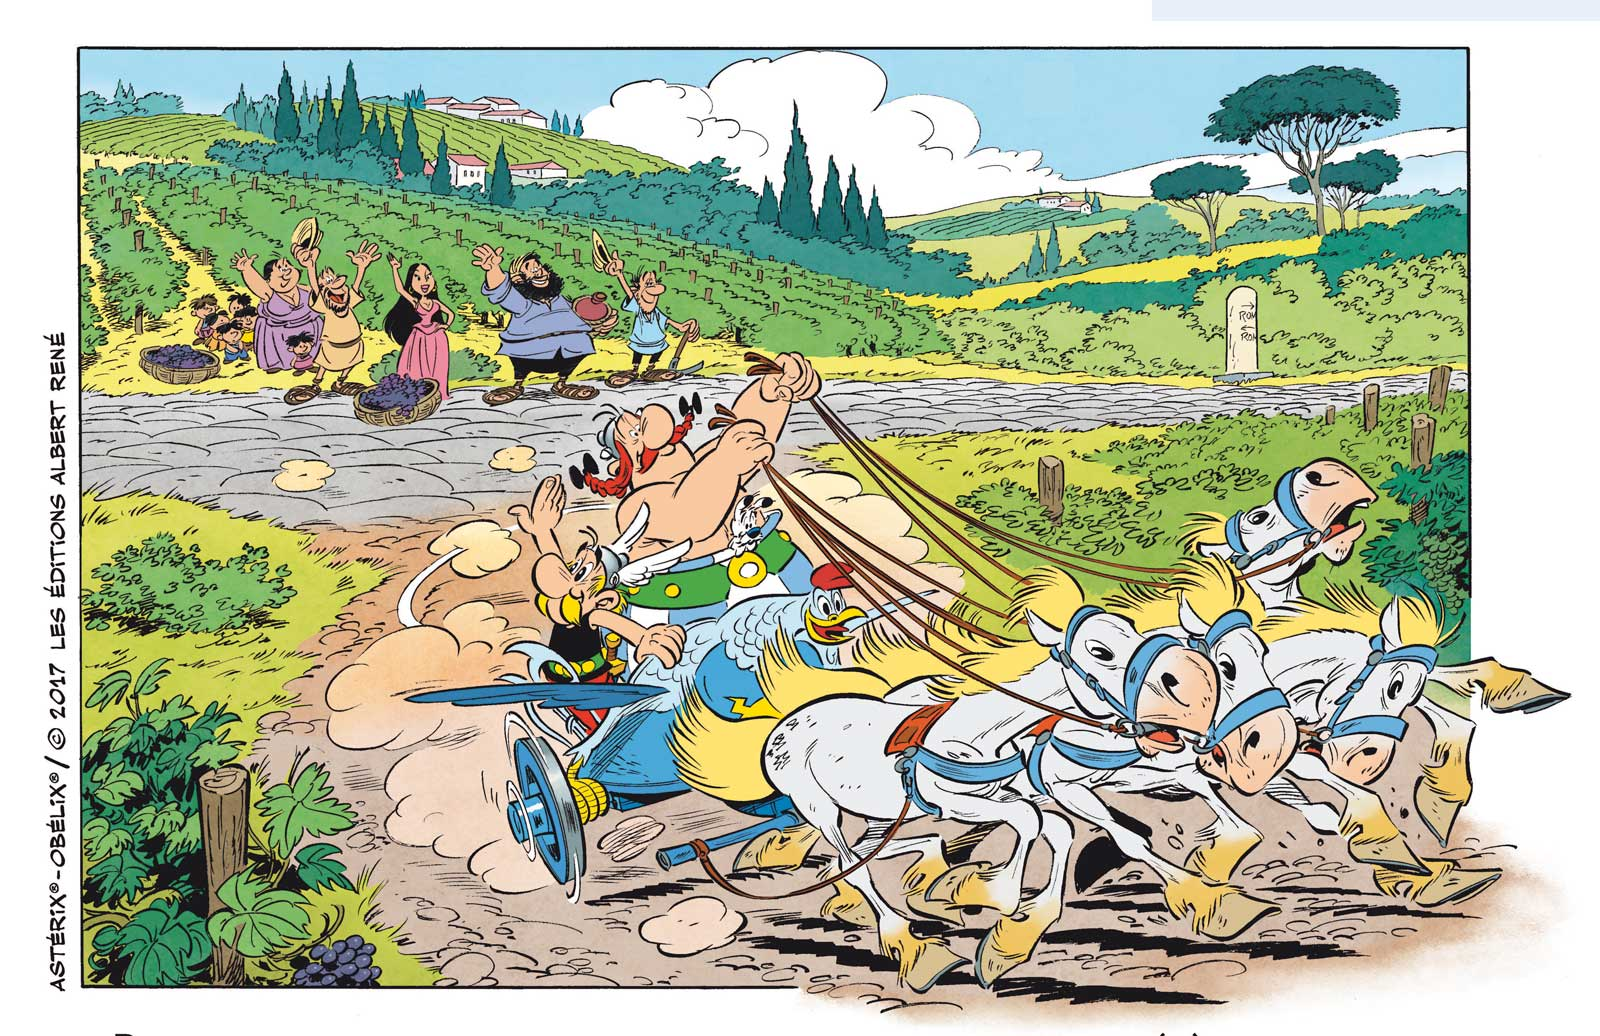 Asterix and Obelix in Britain. Actors of a wonderful adventure comedy